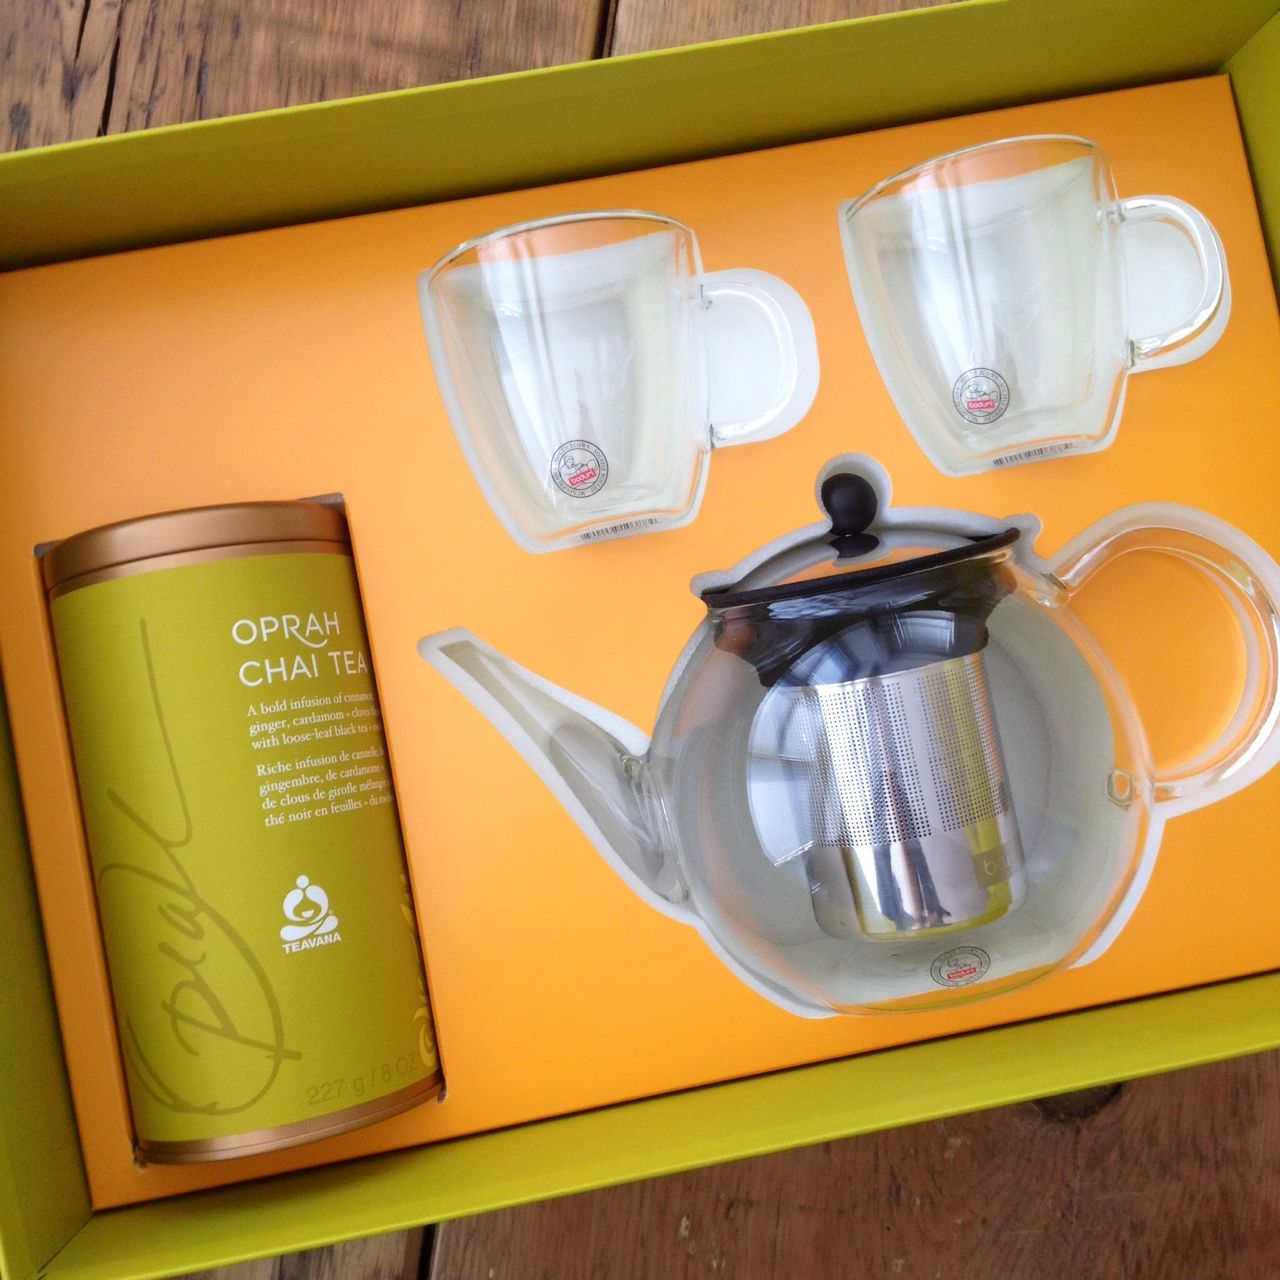 Enter to win this Oprah Chai Tea #giveaway from @Cooking Contest Central!